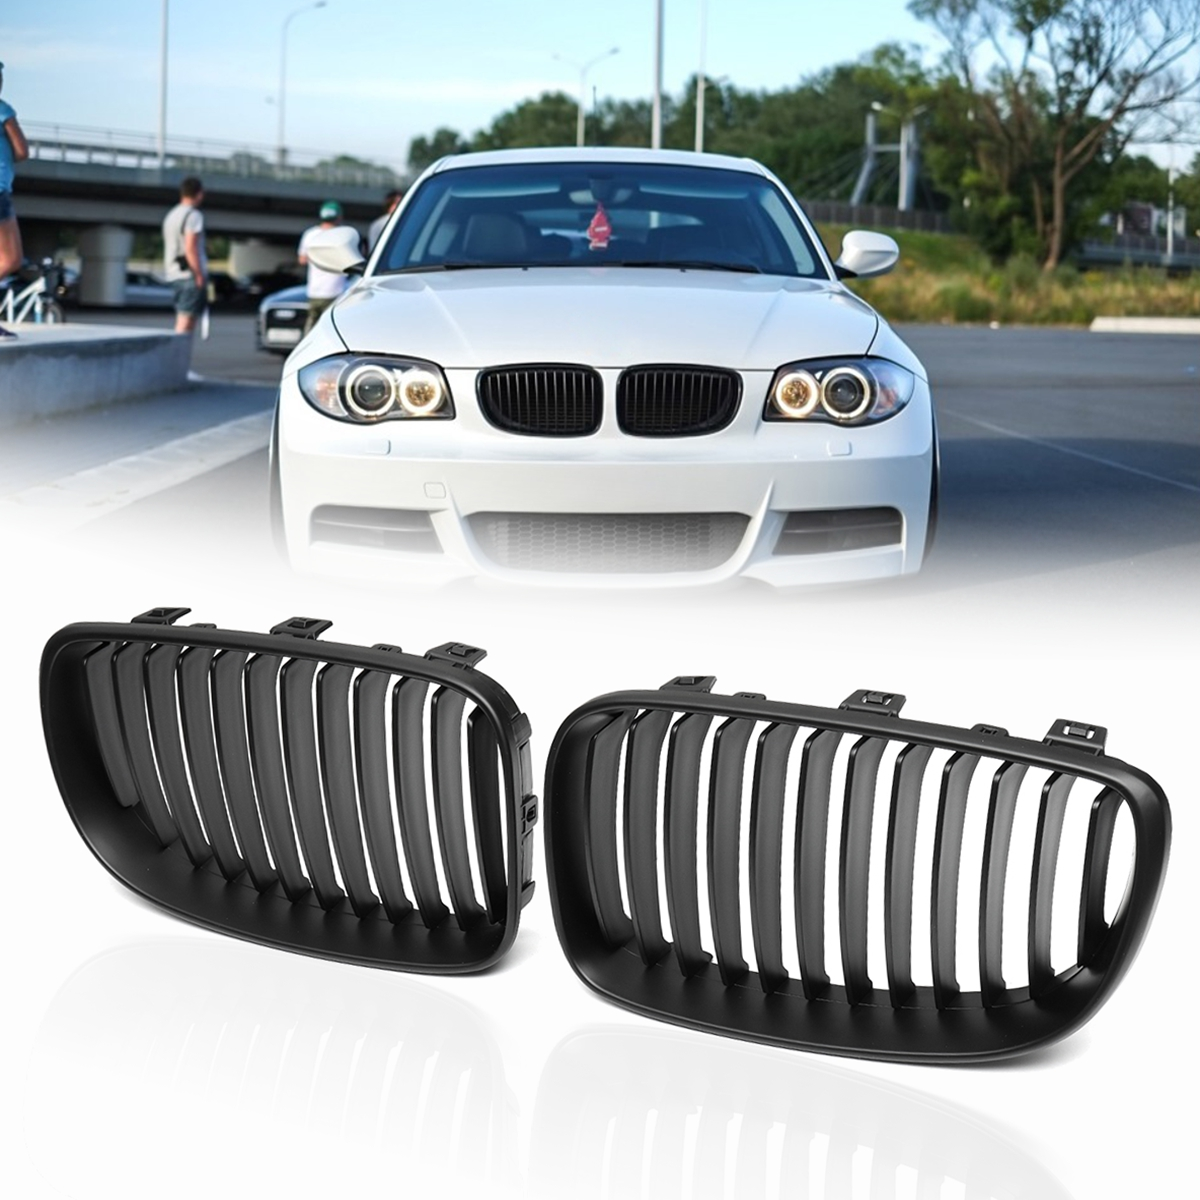 цена For BMW 1 SERIES E81 E82 E87 E88 2d 4d 2007 2008 2009 2010 2011 2012 2013 Pair ABS Side Matte Gloss Black Front Kidney Grilles